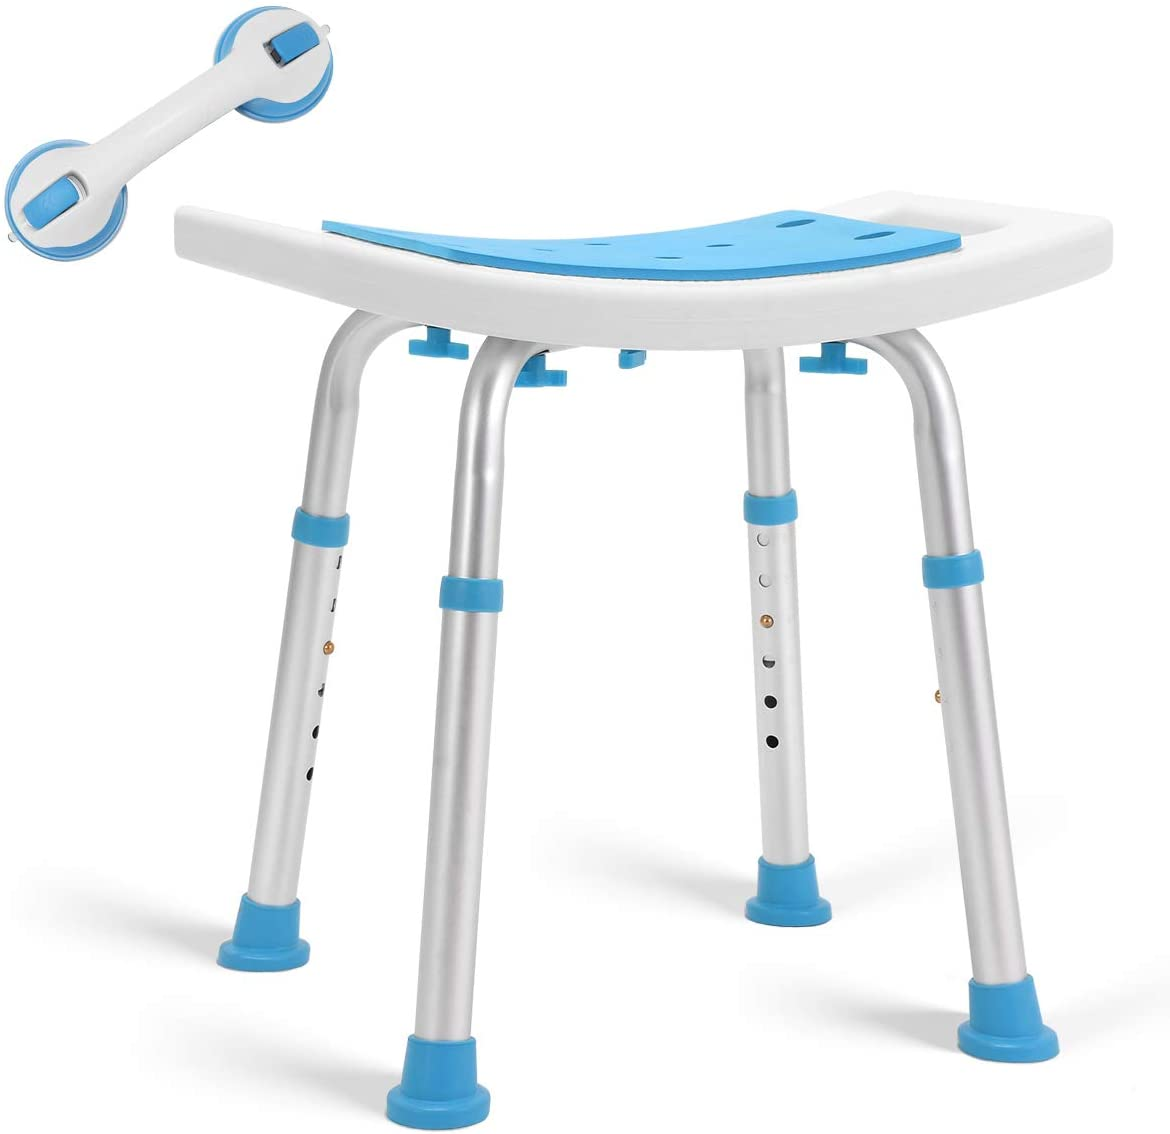 2020 Upgraded Shower Stool 350lbs Paded Bath Seat Chair, Tool-Free Assembly Height Adjustable Bath Bench w/Paded Seat and Assist Grab Bar for Seniors, Elderly, Disabled, Handicap and Injured: Health & Personal Care